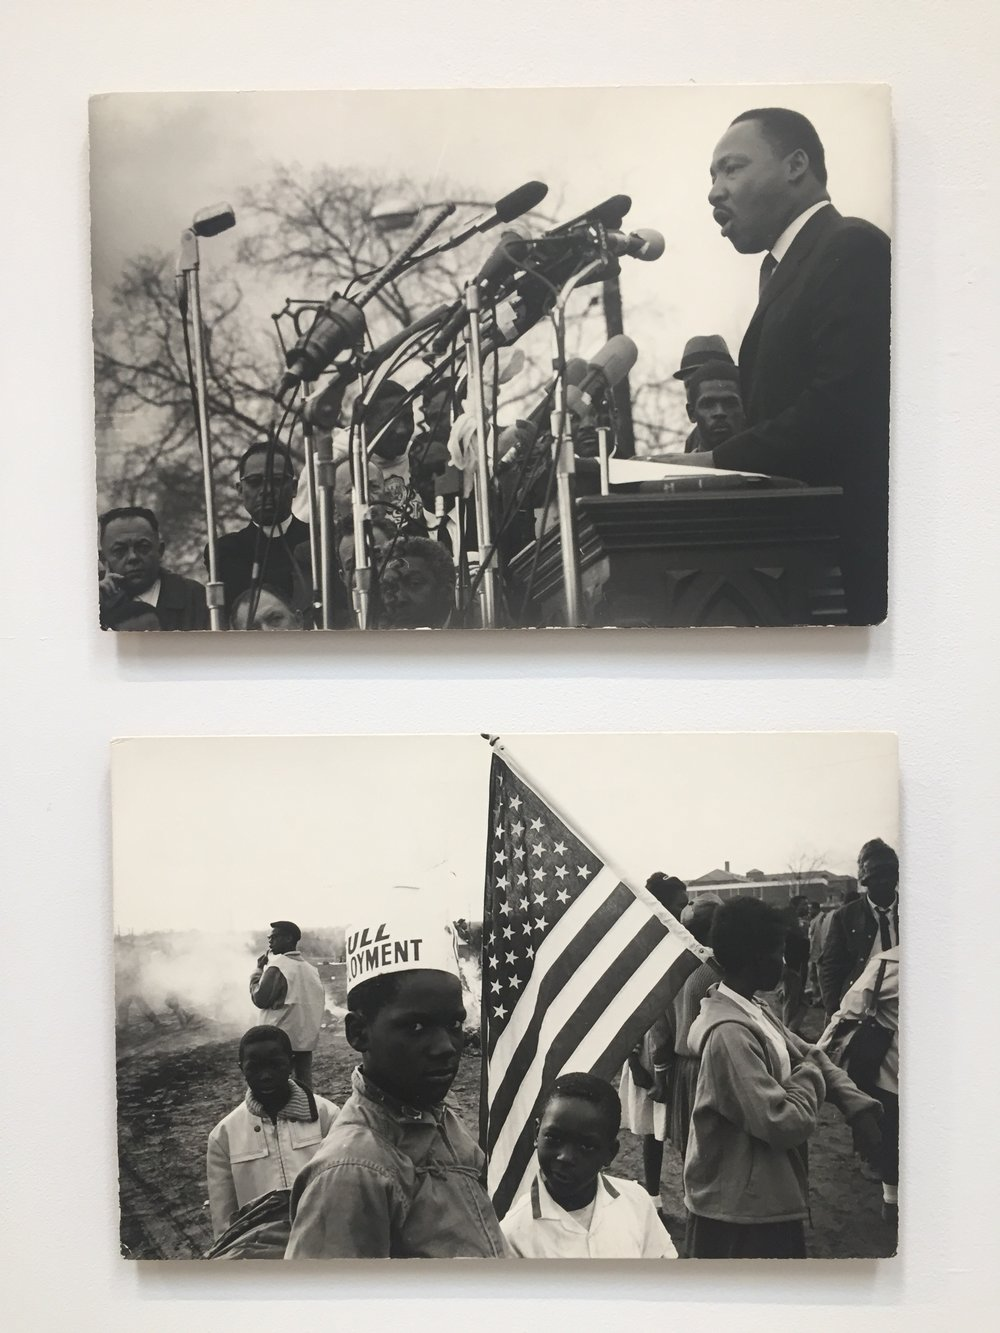 Civil Rights Movement Photos by Dennis Hopper